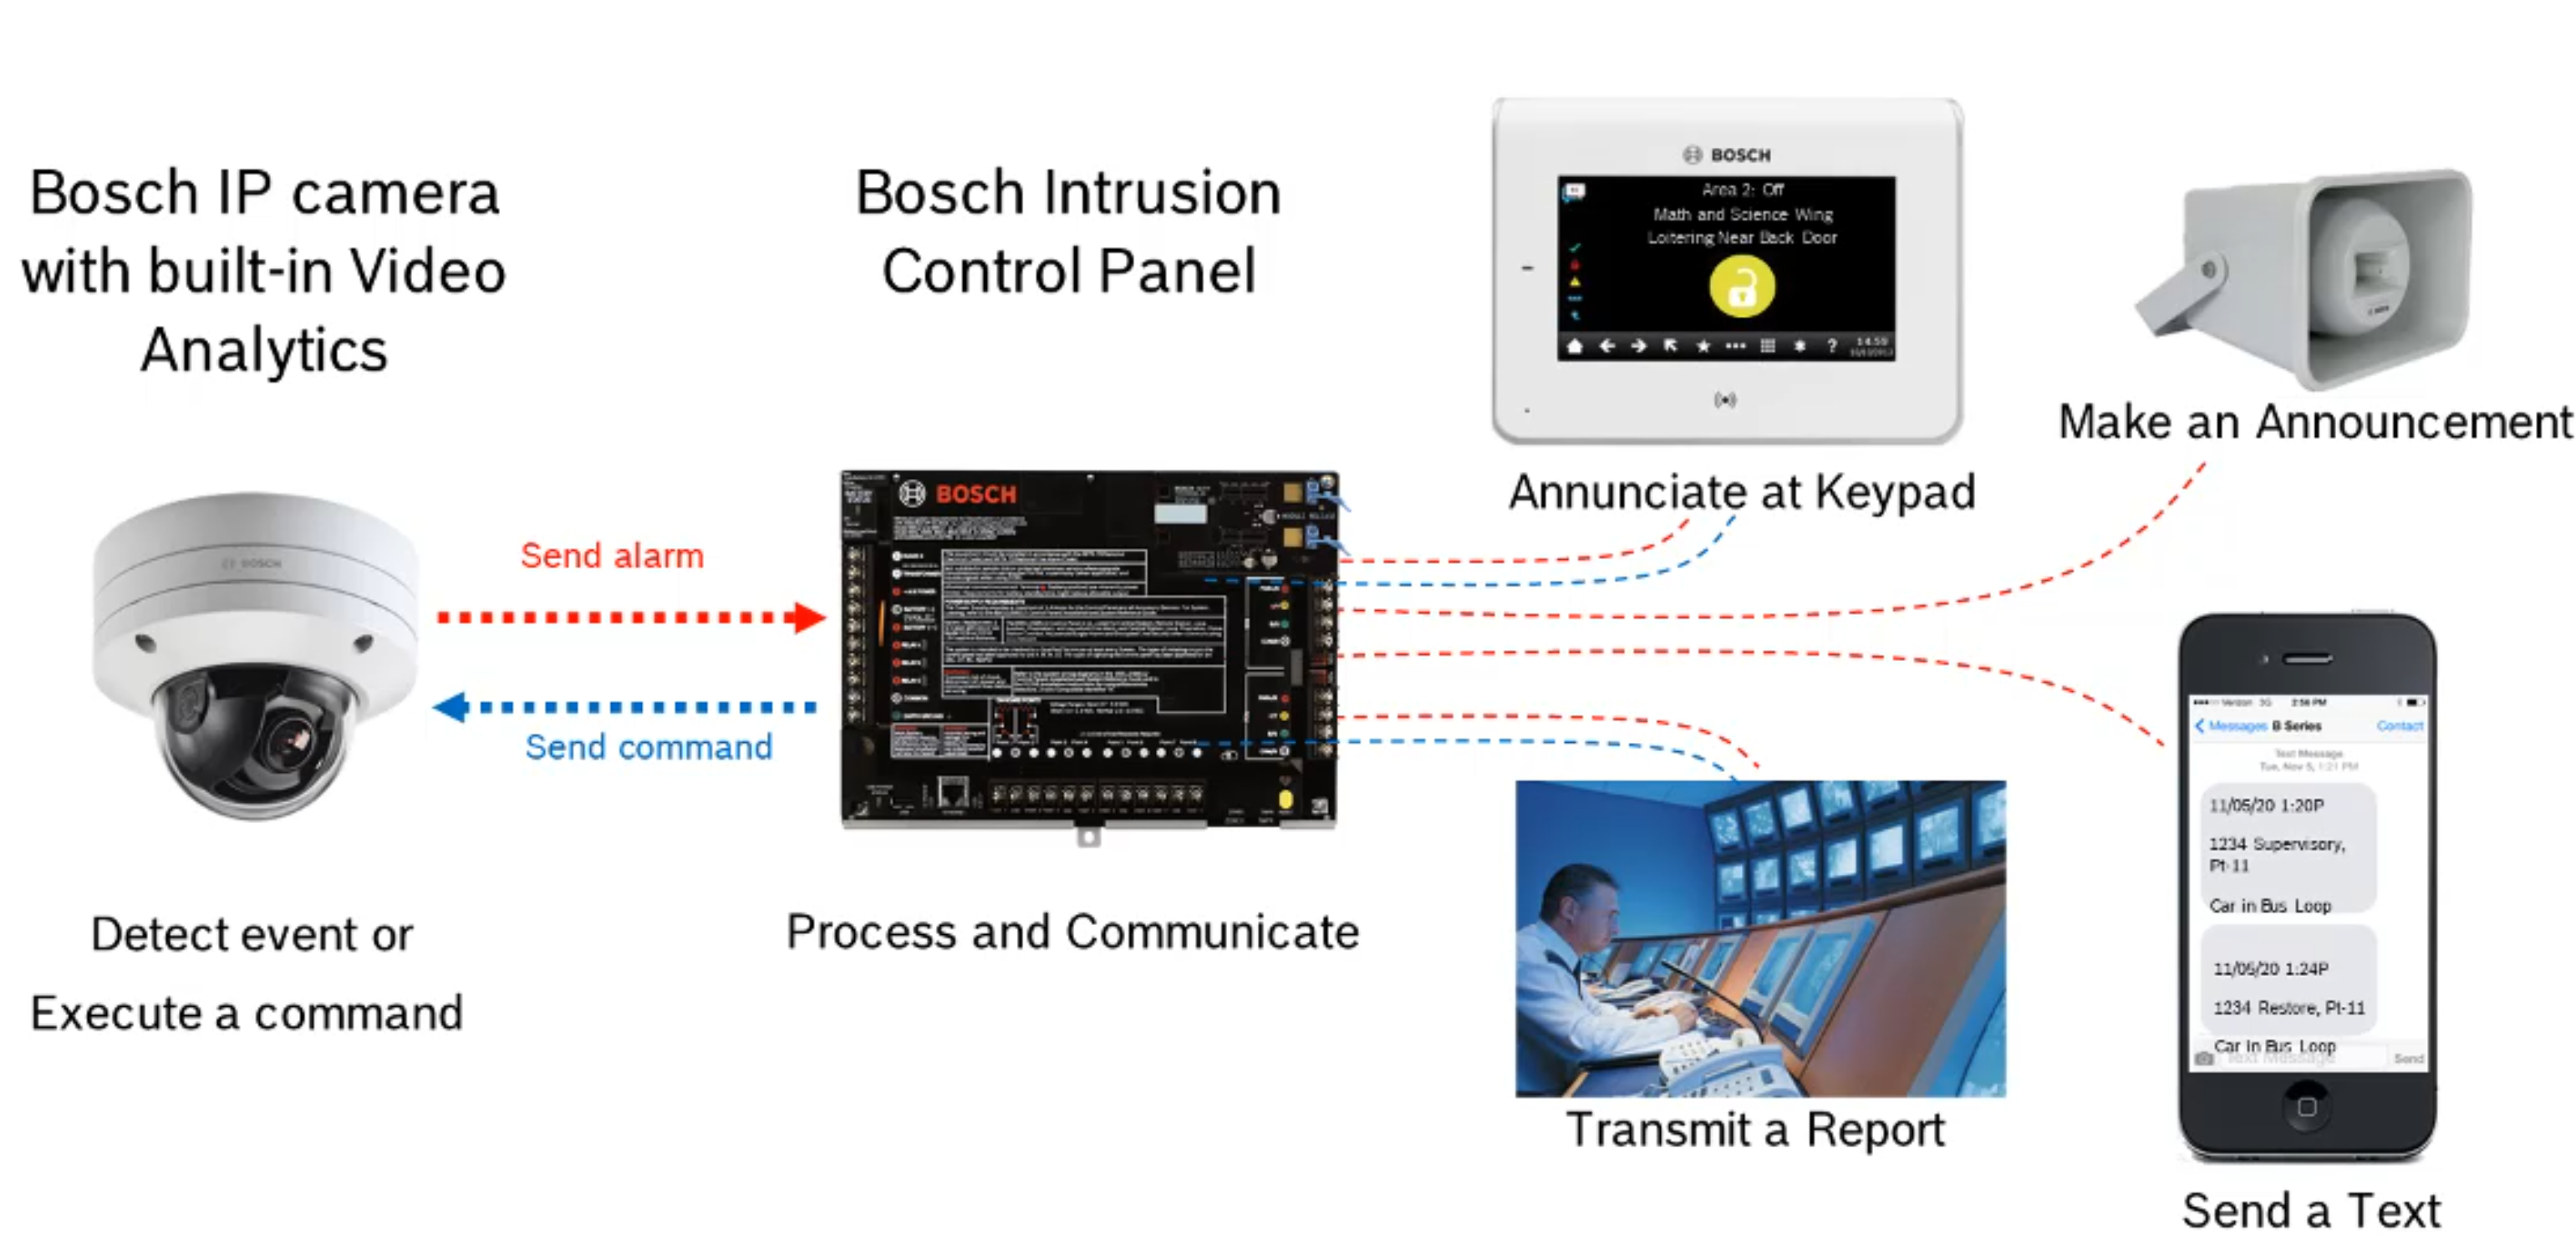 Bosch Intrusion Notification Paths image